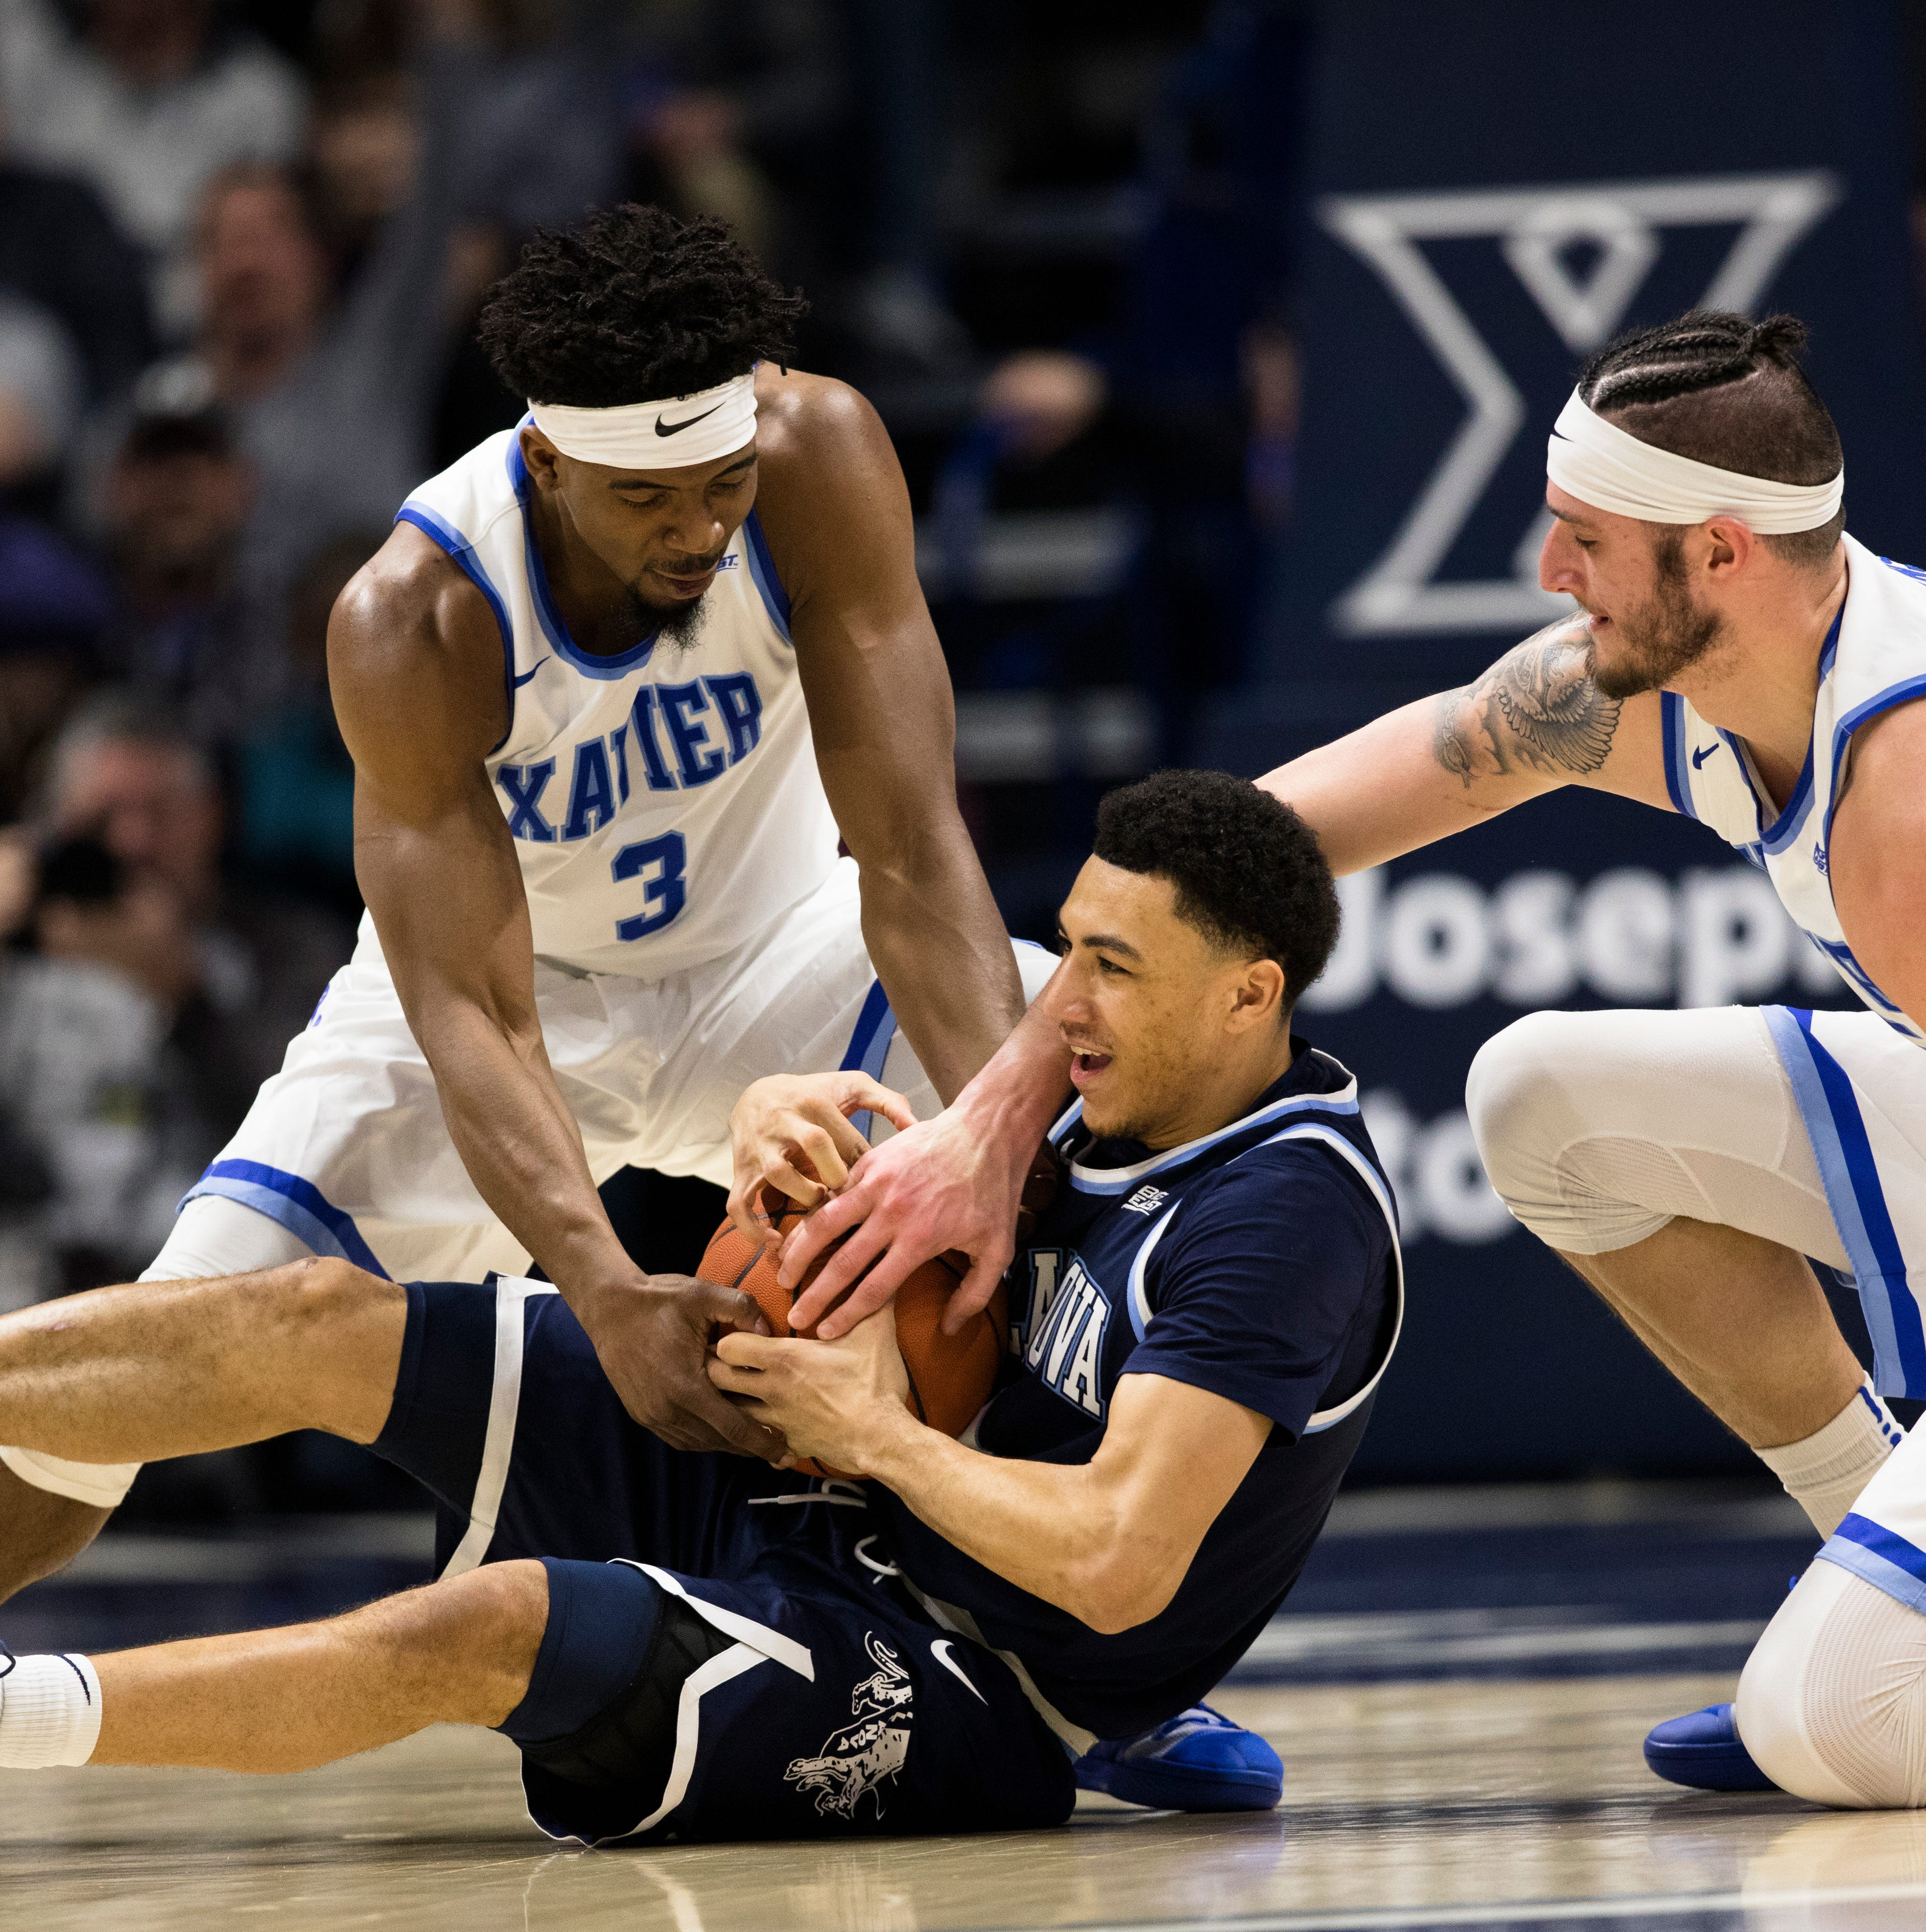 Cincinnati Bearcats reach out to Villanova transfer Jahvon Quinerly, per report